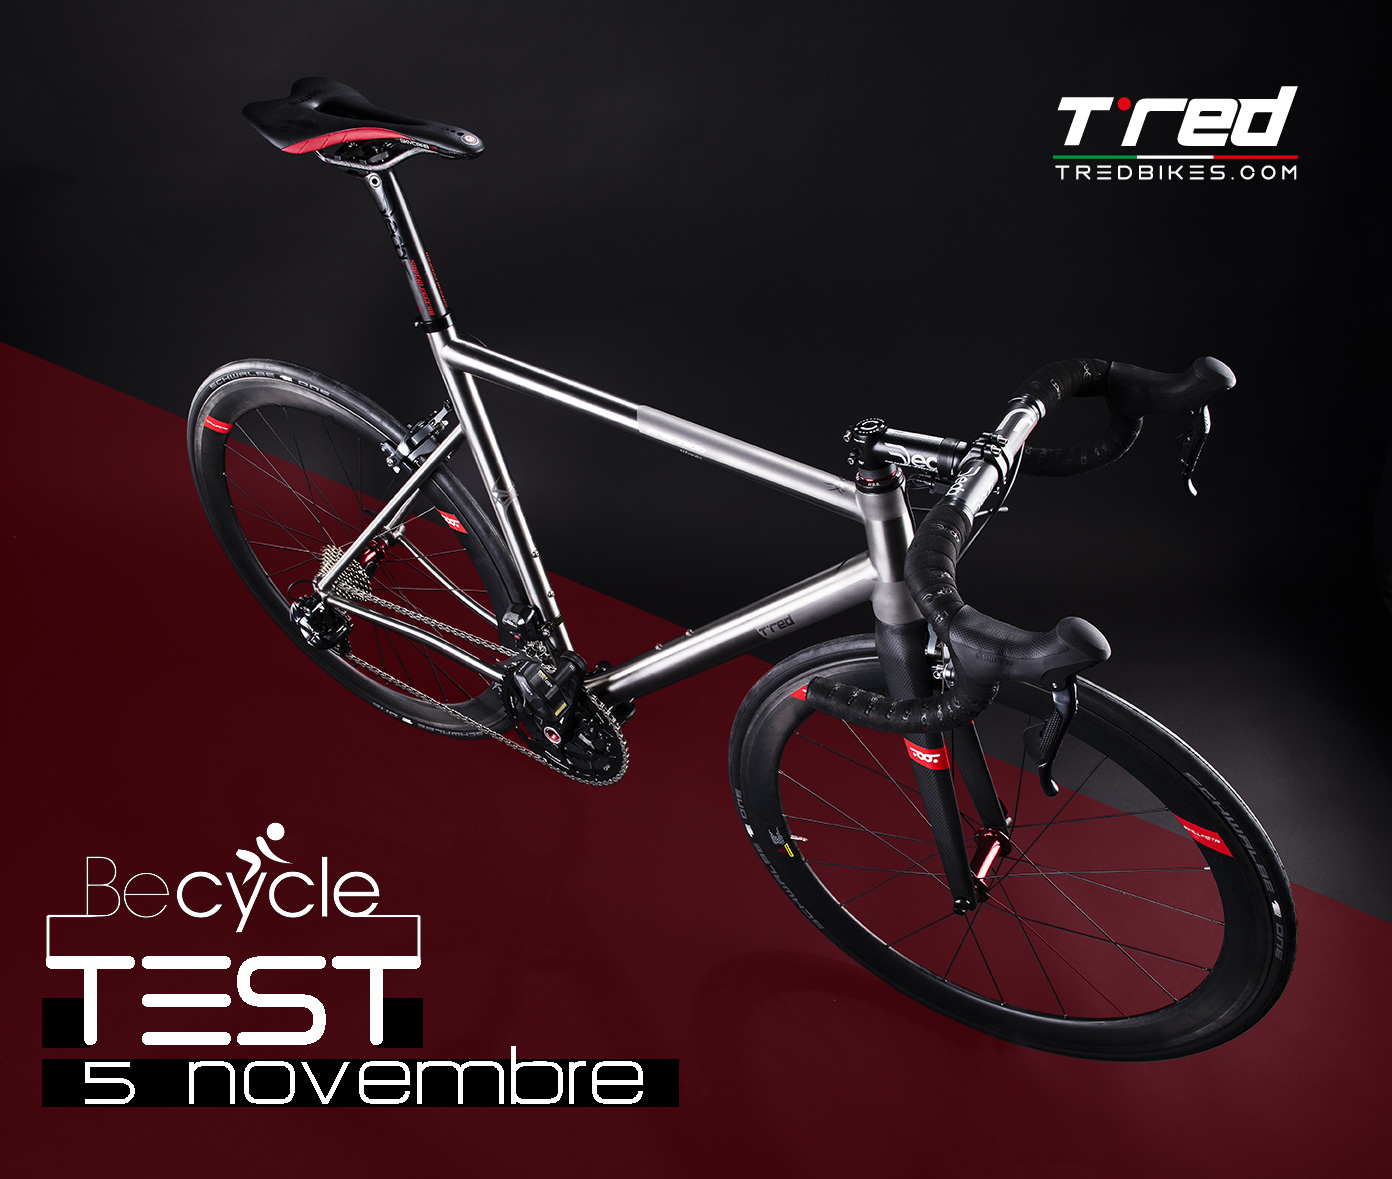 becycle_5_novembre-2-trde